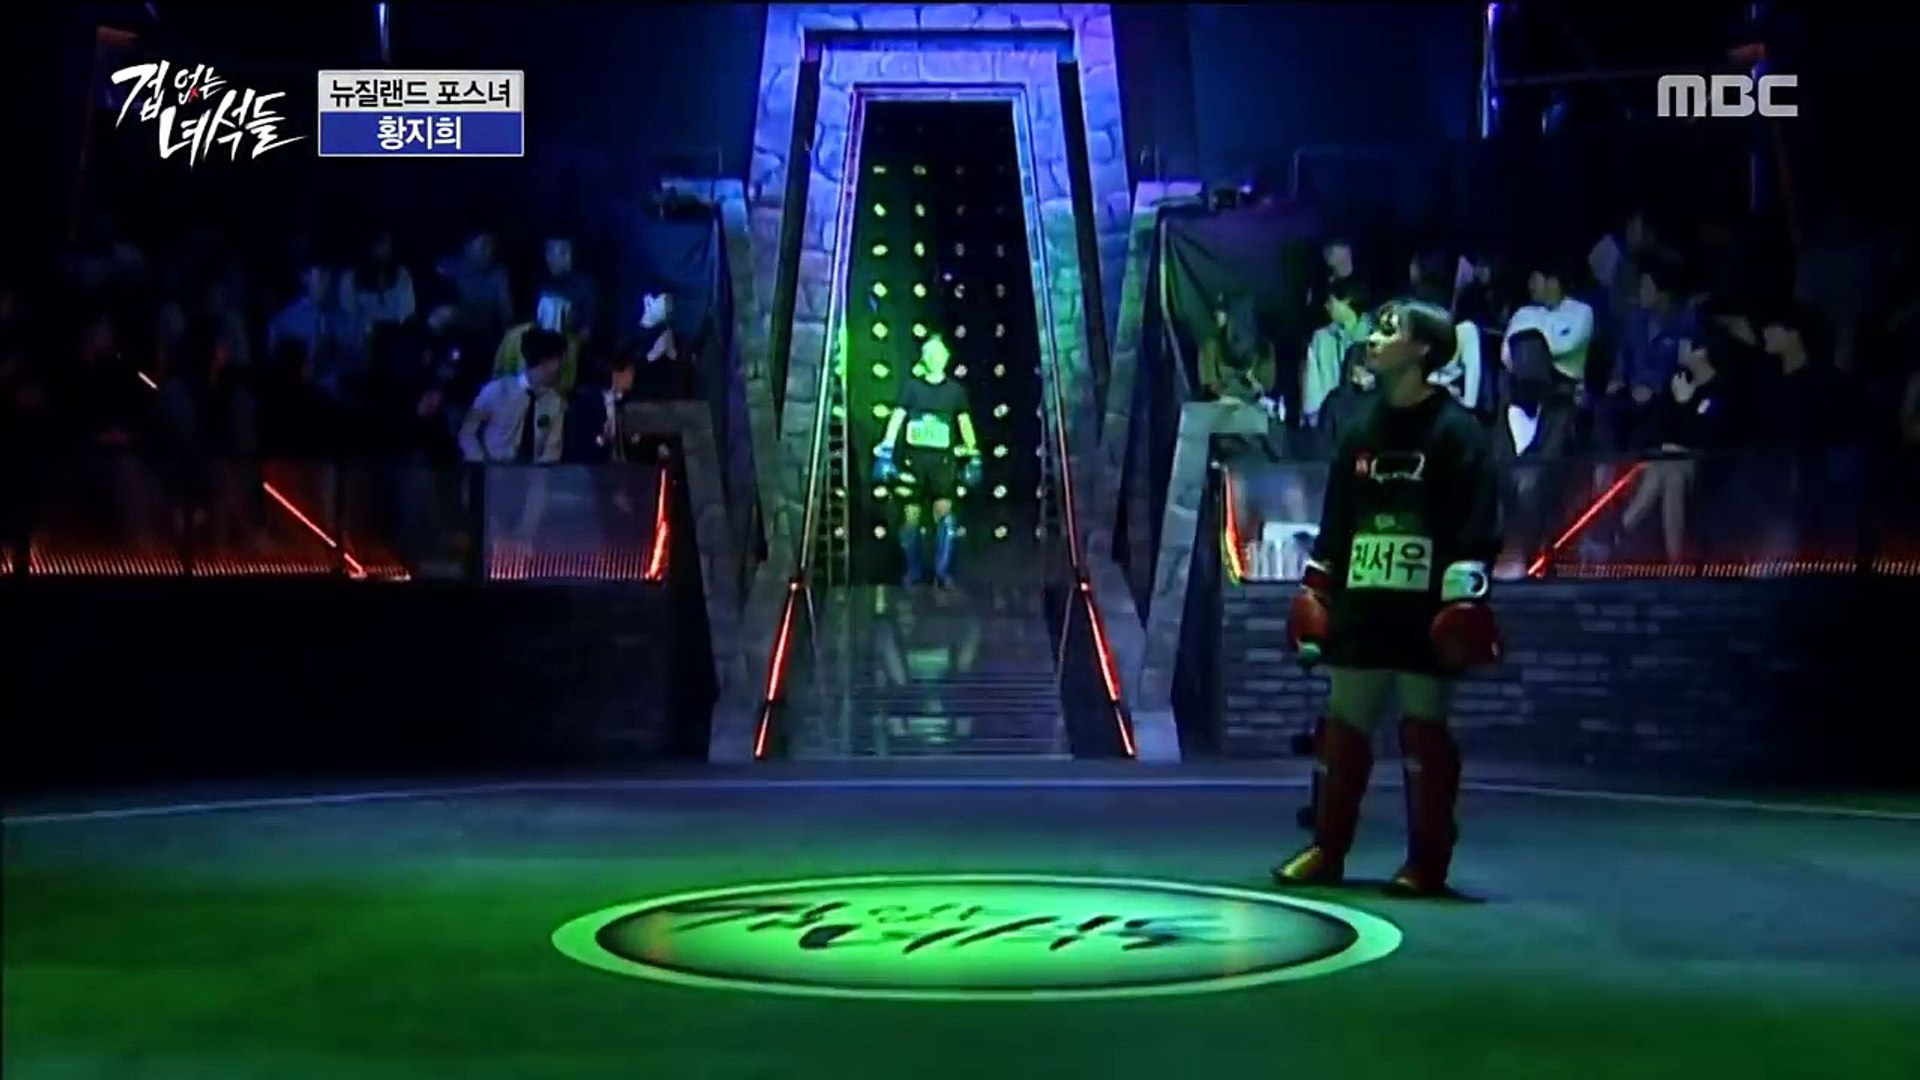 [Fearless guys] 겁없는녀석들-Fearless guys! Who will become the strongest female fighter 20171111-6jgFNMKc